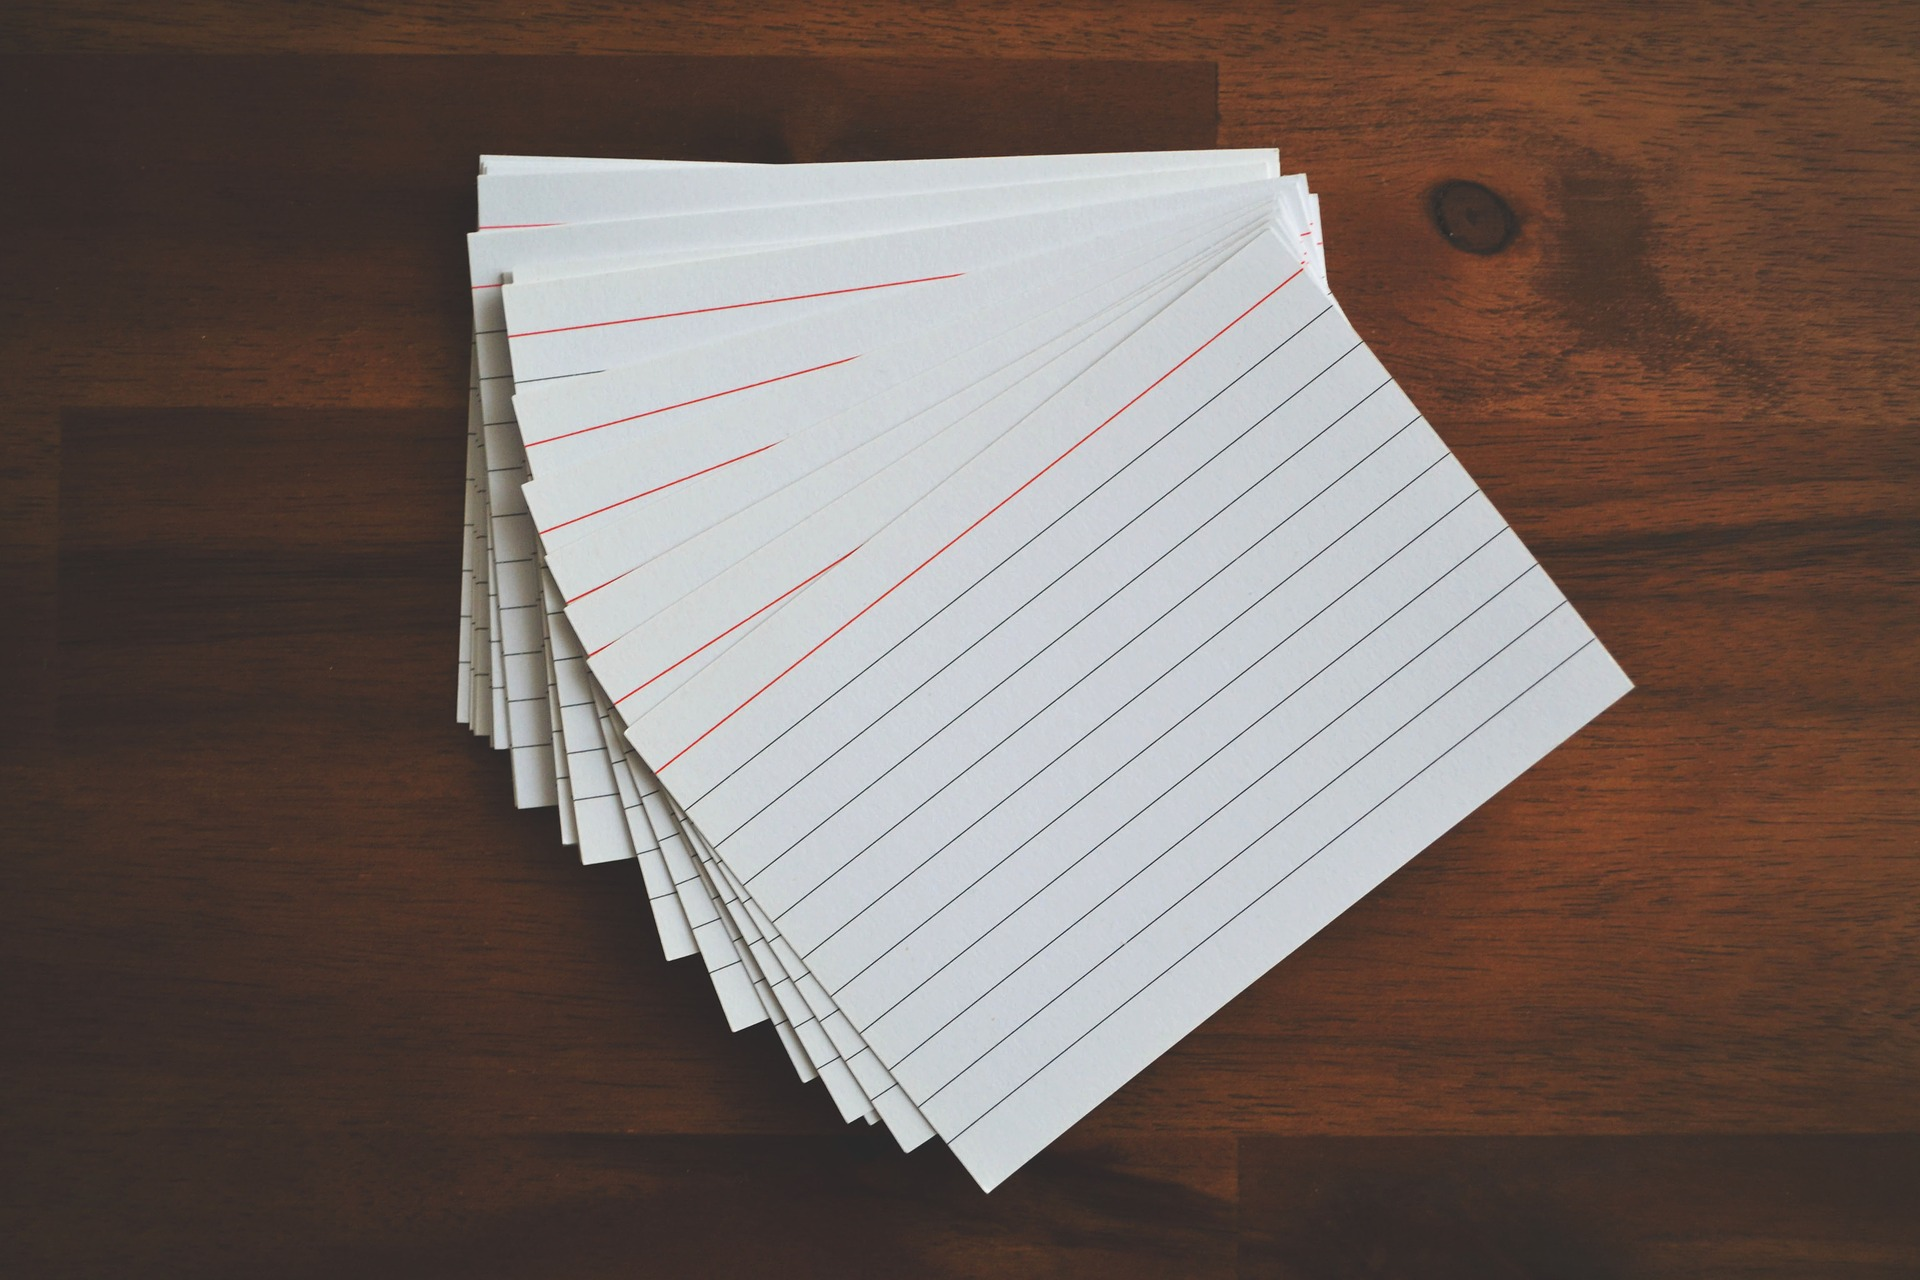 Rethinking Index Card Games for the Online Classroom